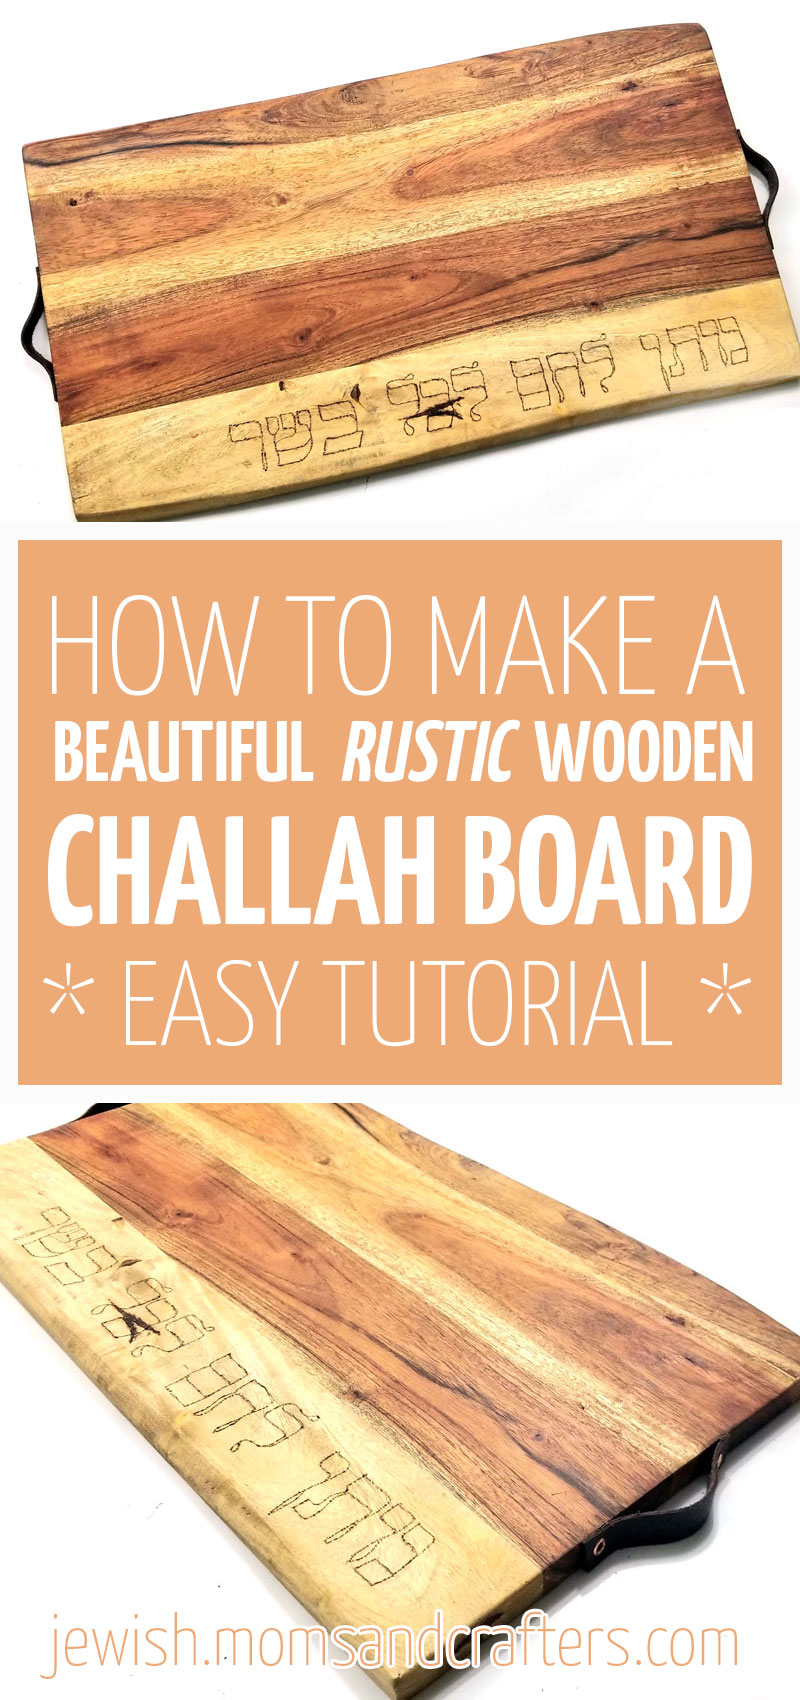 Make your own DIY wood challah board - a fun DIY Jewish craft for adults! This cool Judaica project is easy for woodburning beginners.